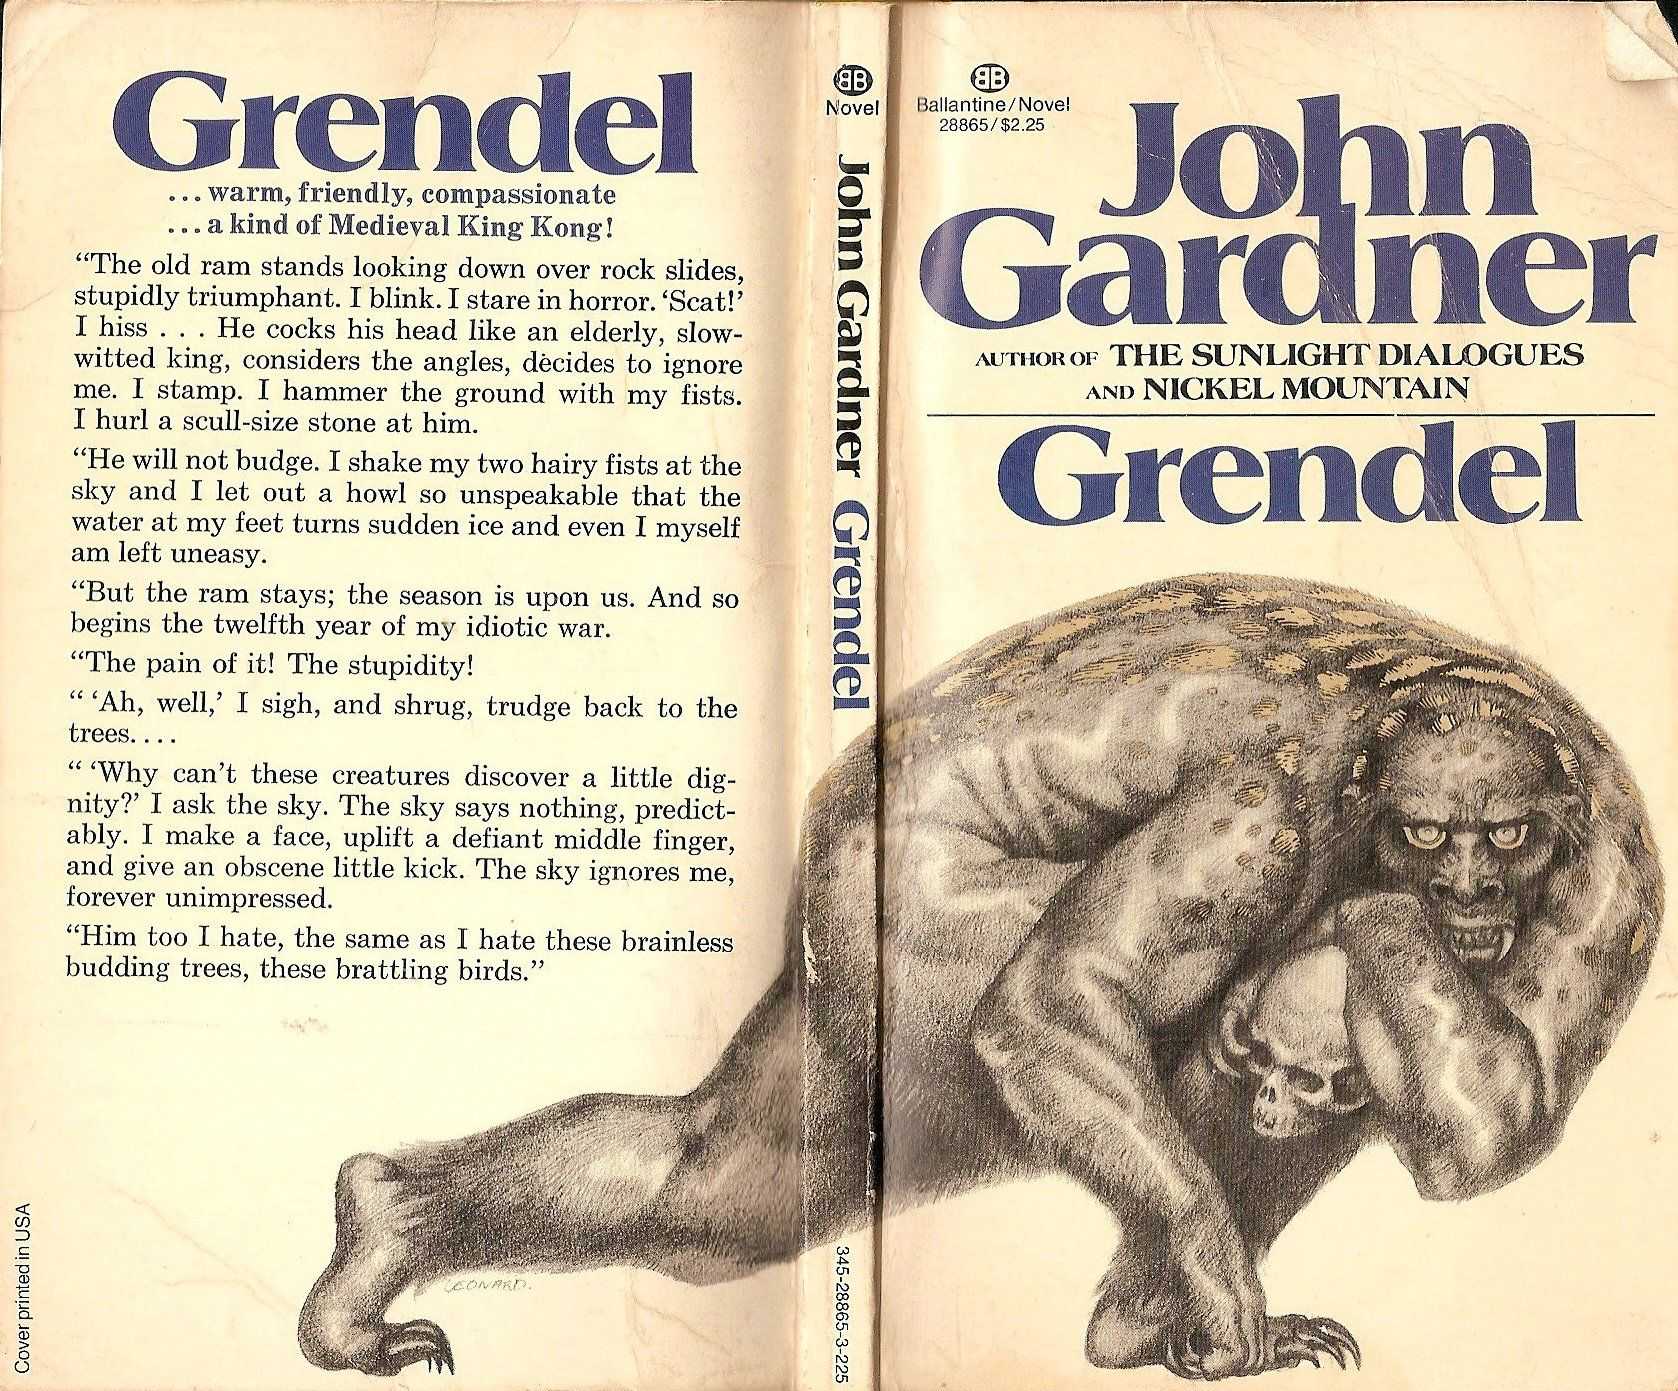 Grendel - John Gardner | My Books - A Cover Gallery | Pinterest ...